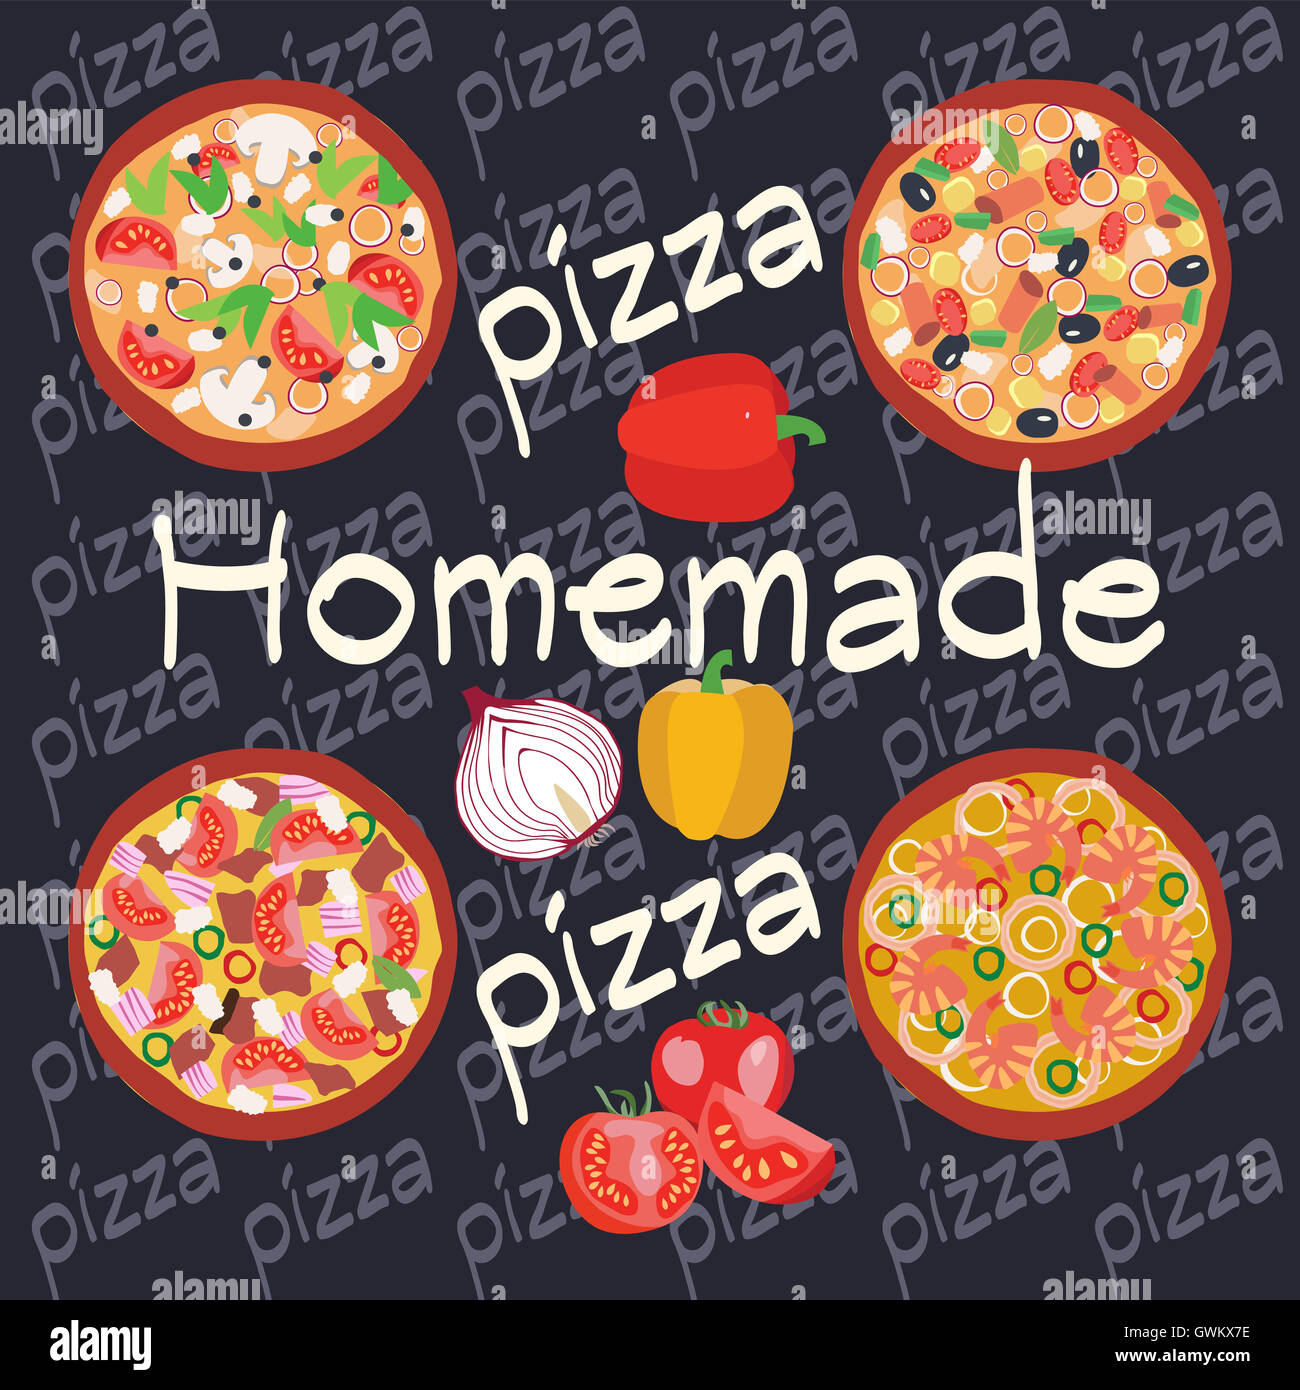 Vector Flat Homemade Hot Pizza Icons Set Posters Design Of Italian Restaurant Flyer Or Banner Pizzeria Cooking Backgrou